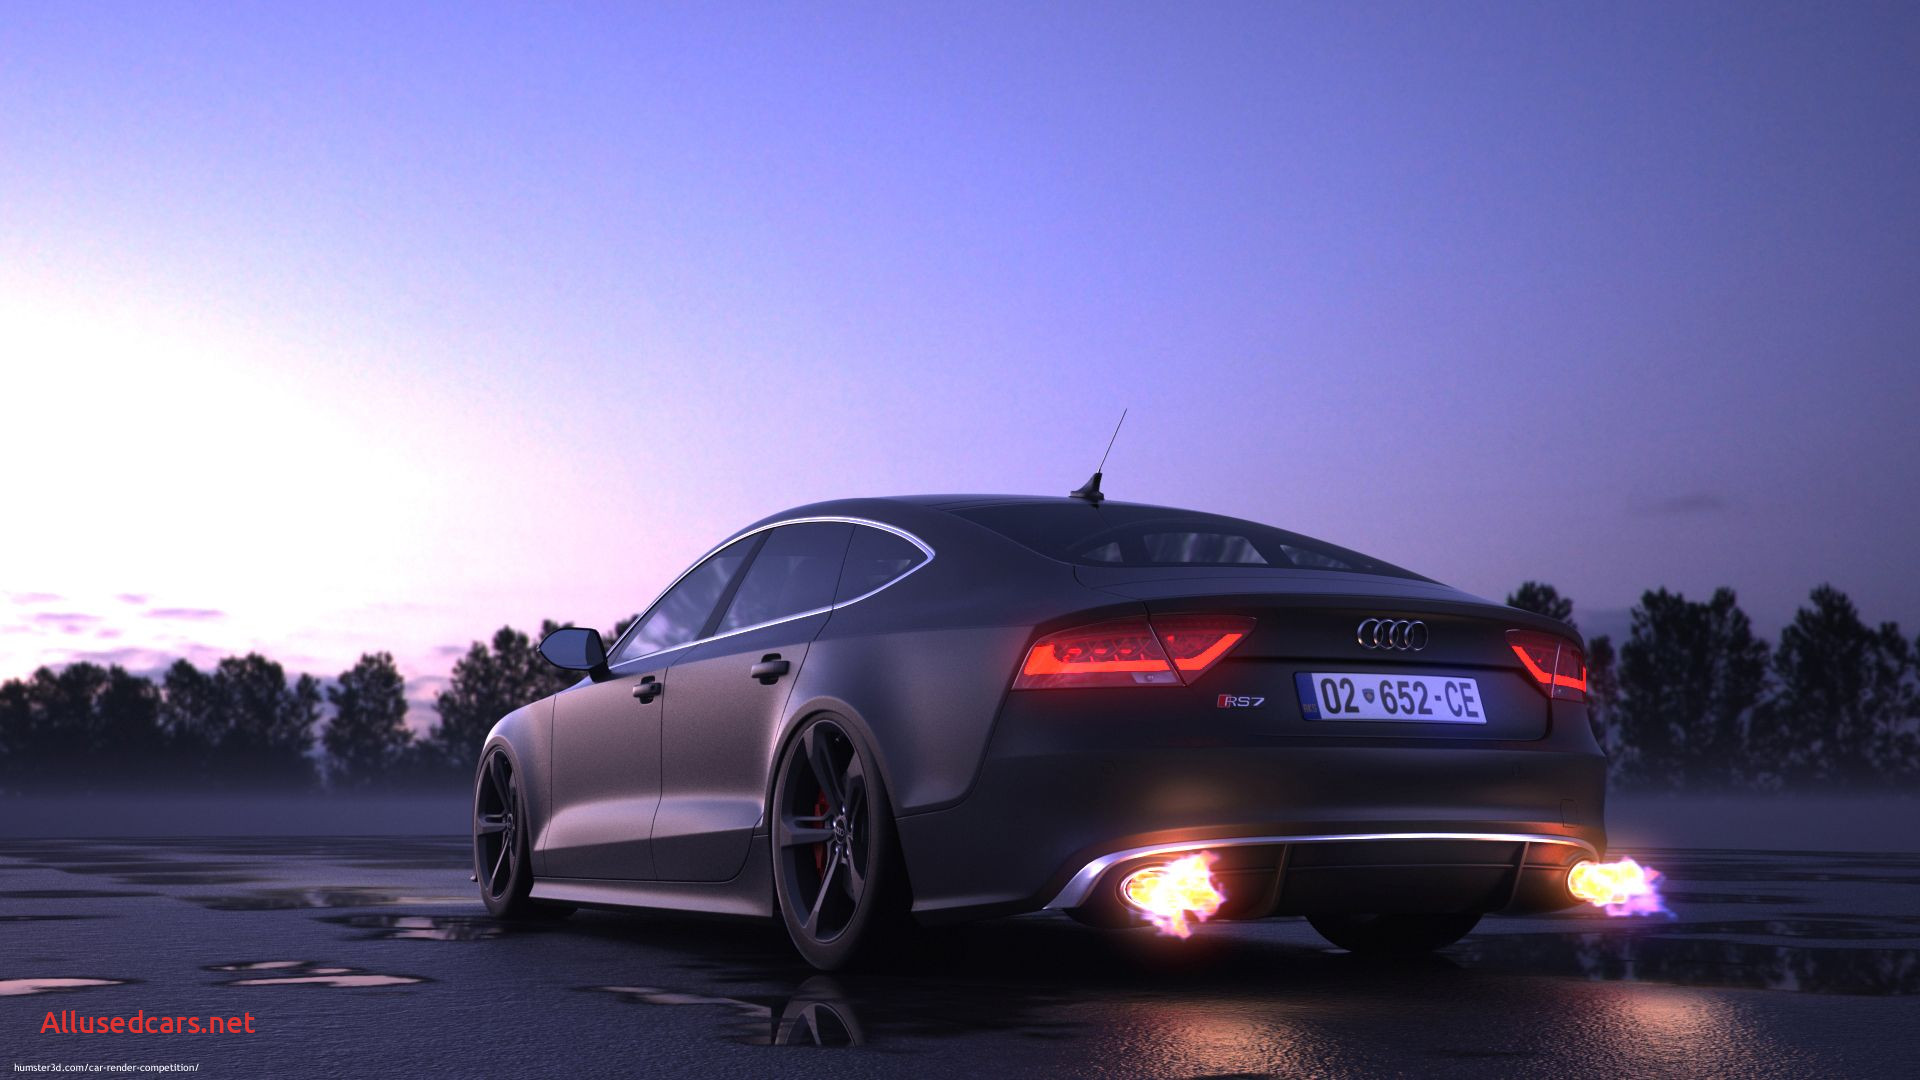 Audi A7 2017 Unique Audi Rs7 Wallpapers top Free Audi Rs7 Backgrounds